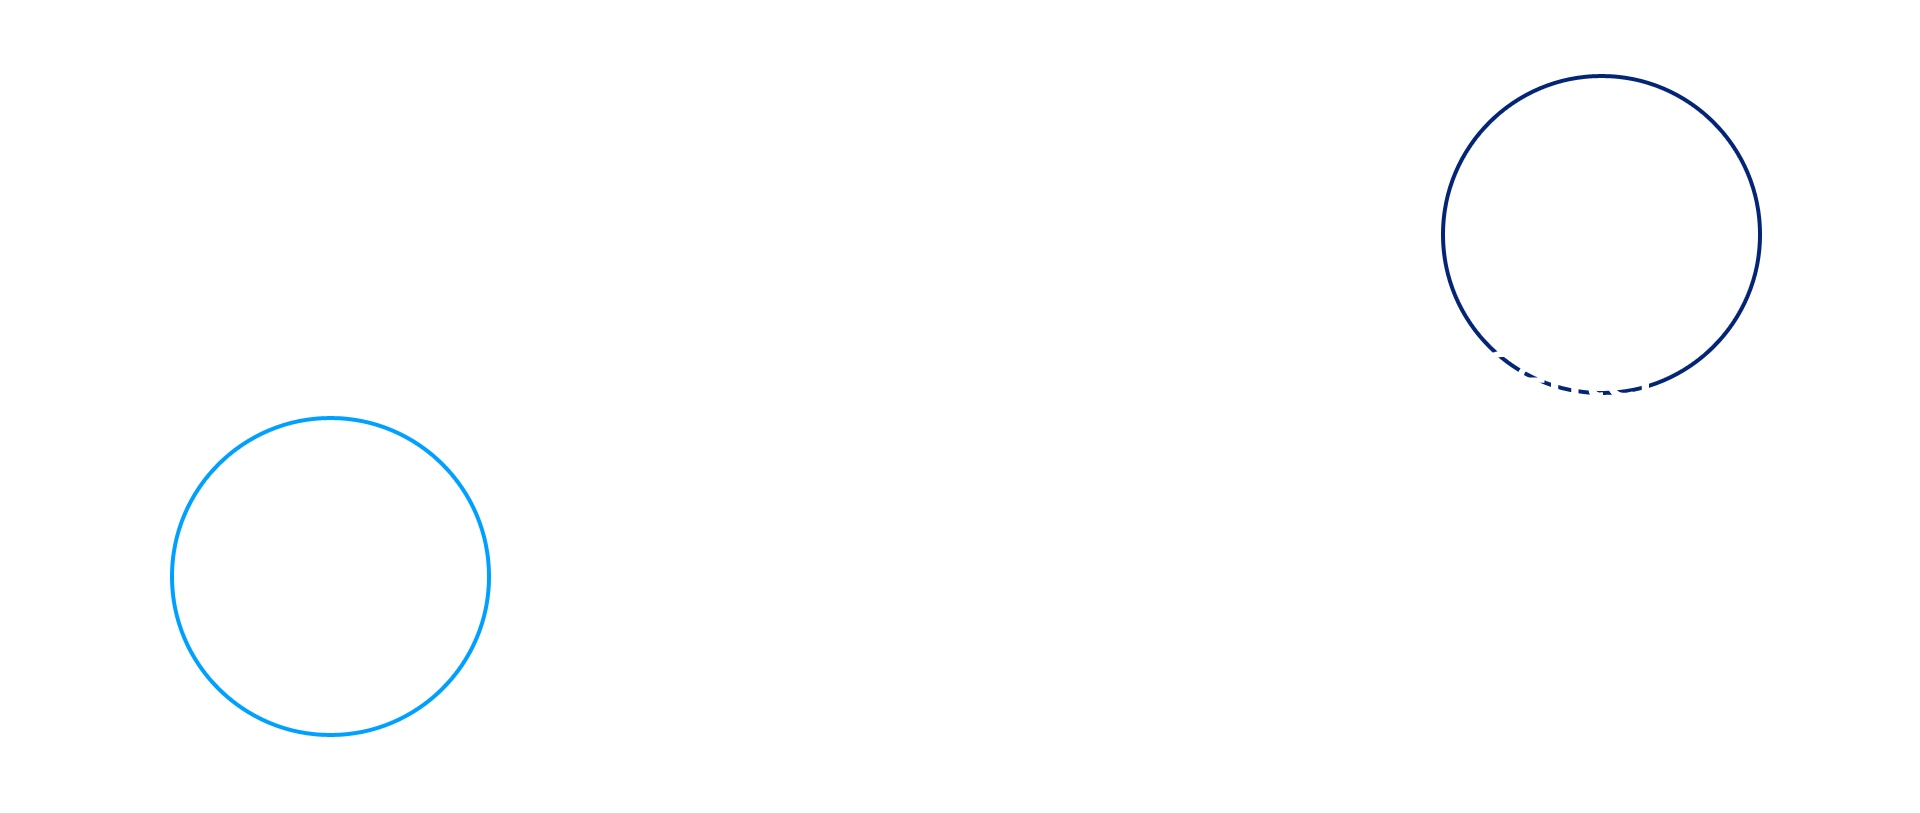 Next Generation Artificial Intelligence Research Center